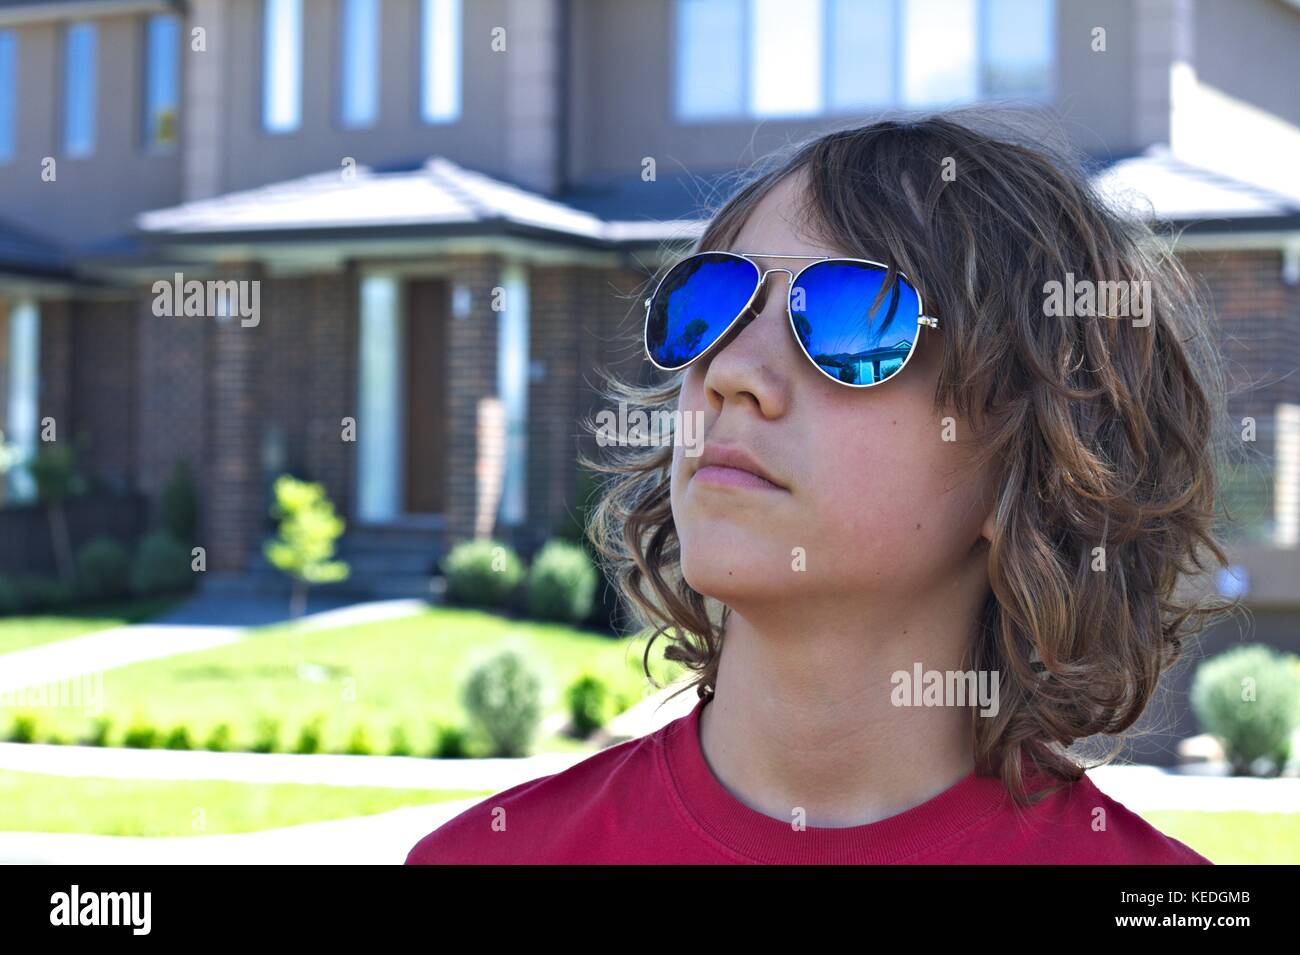 Young teenage male wearing blue sunglasses head shot against suburban background. Stock Photo